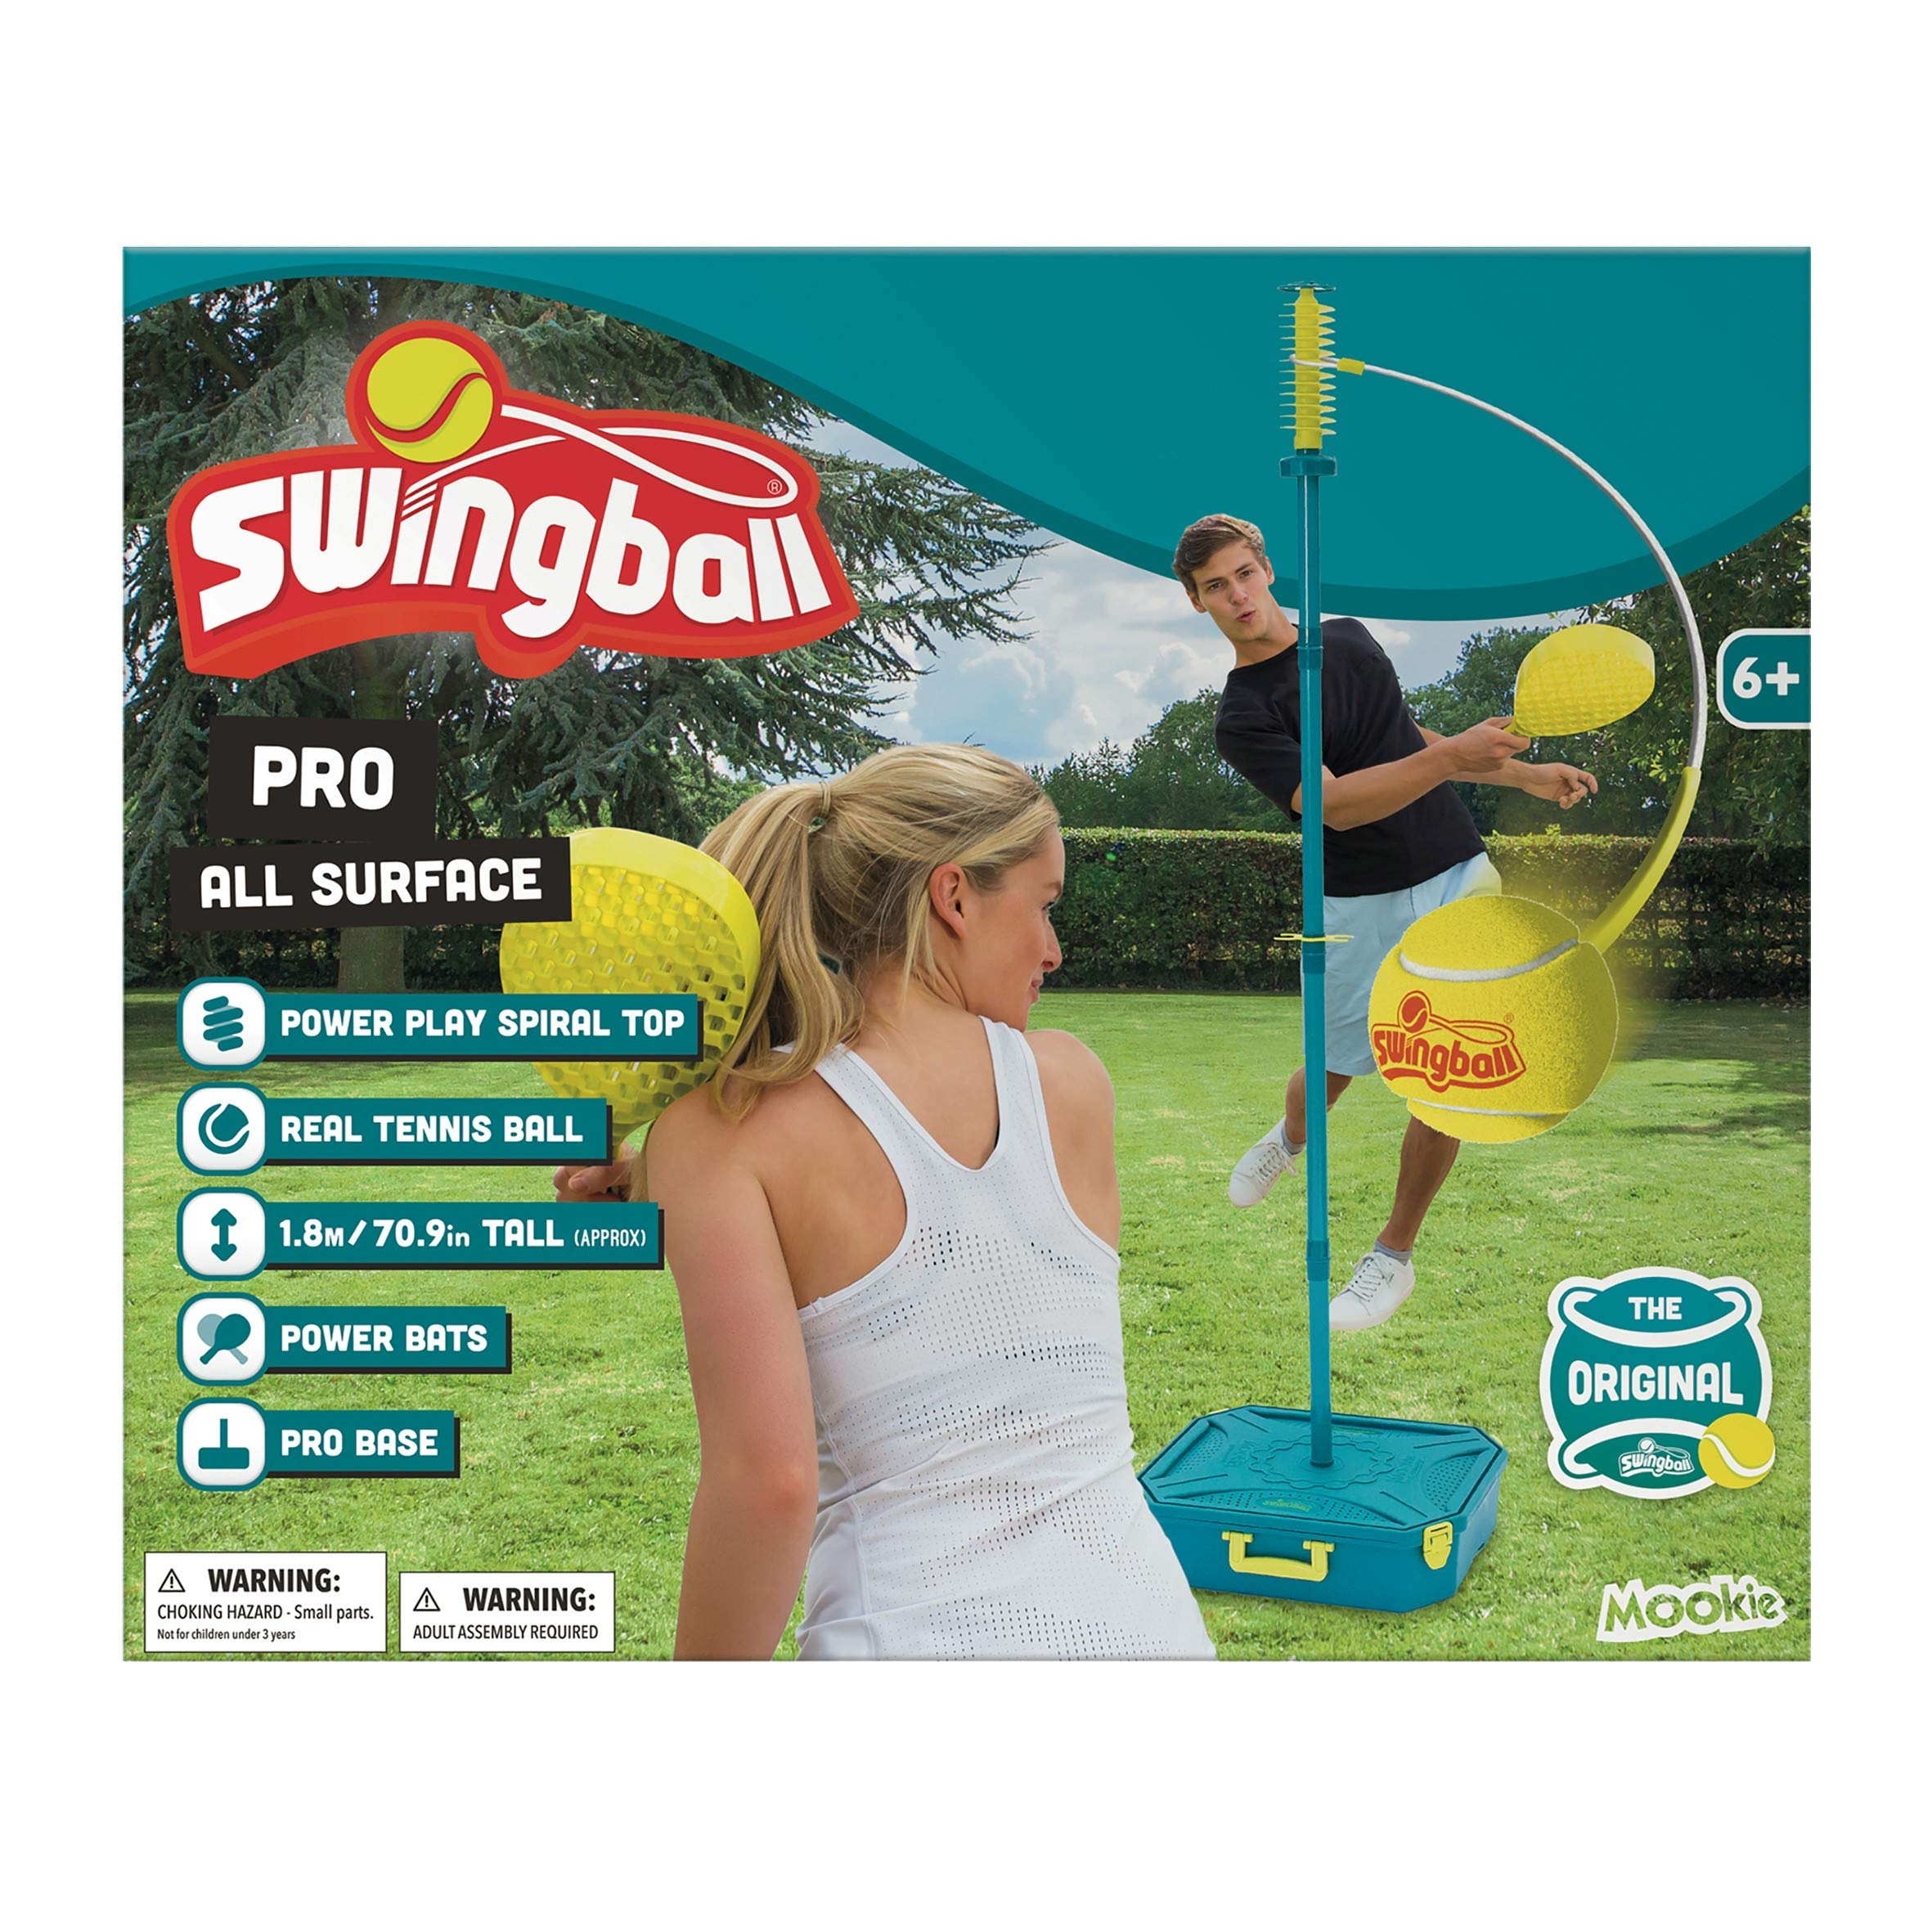 All Surface PRO Swingball Tetherball - Portable Tetherball Set by Swingball